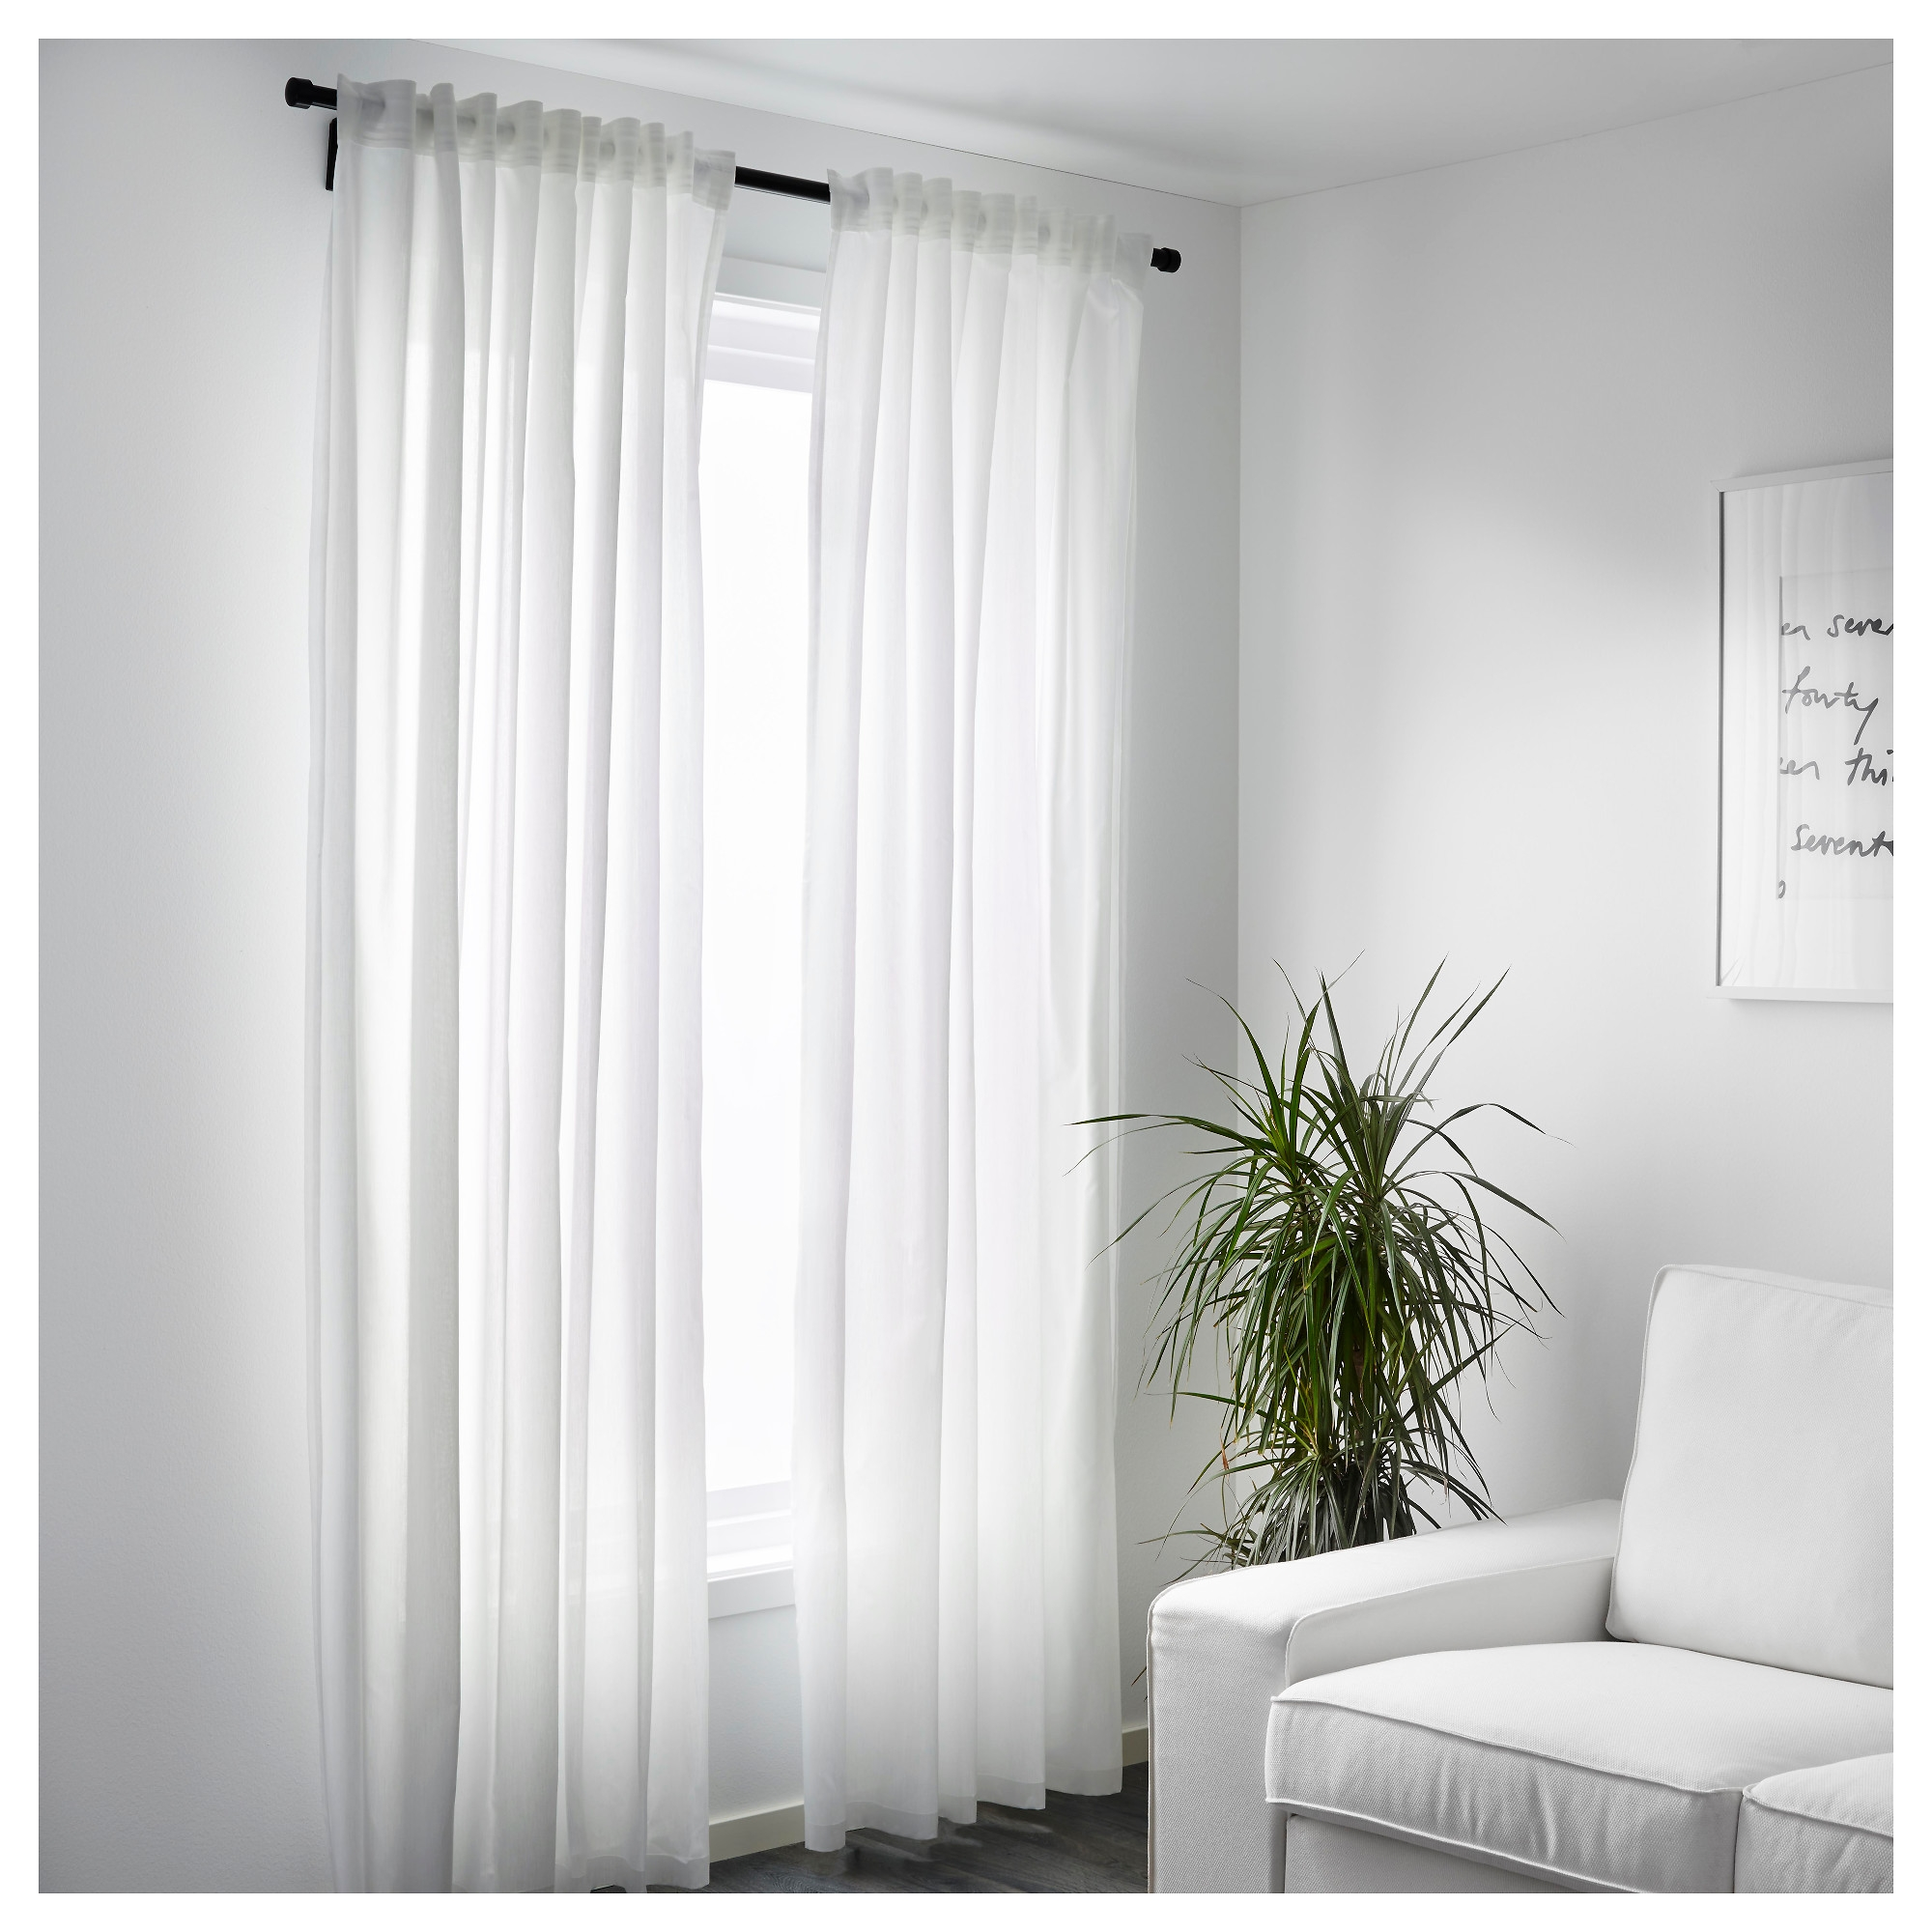 Vivan Curtains 1 Pair Ikea Within Sheer White Curtain Panels (Image 22 of 25)